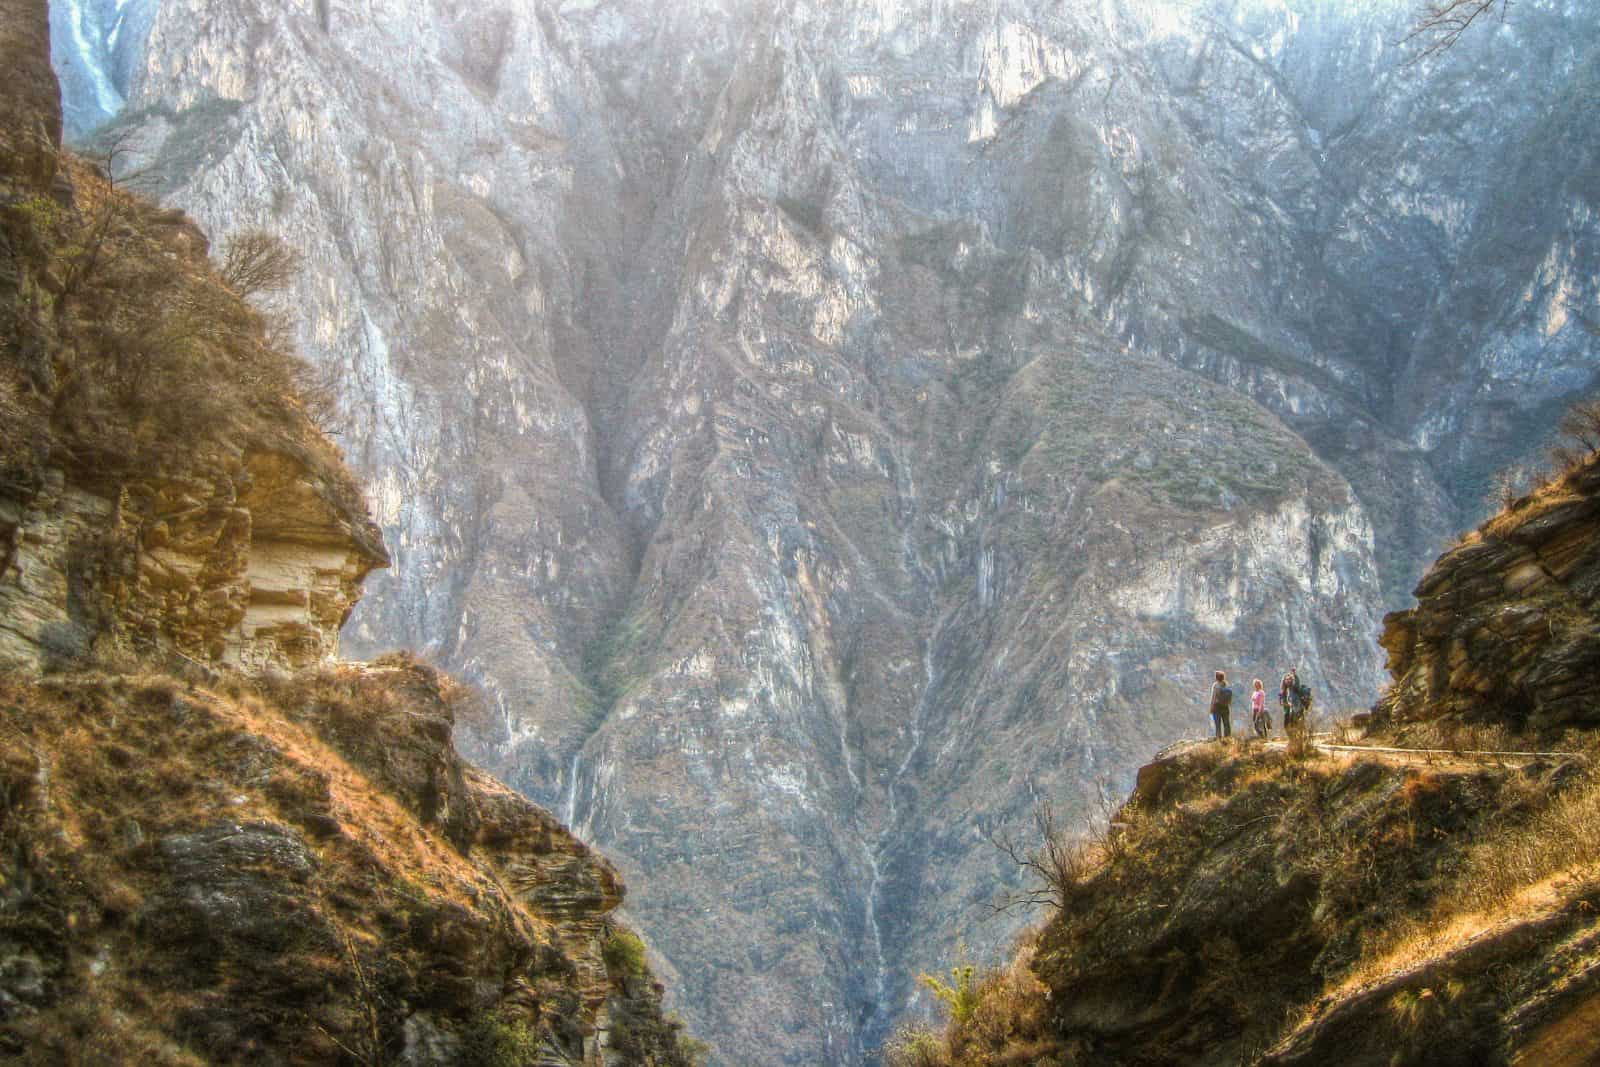 Cliffs at Tiger Leaping Gorge